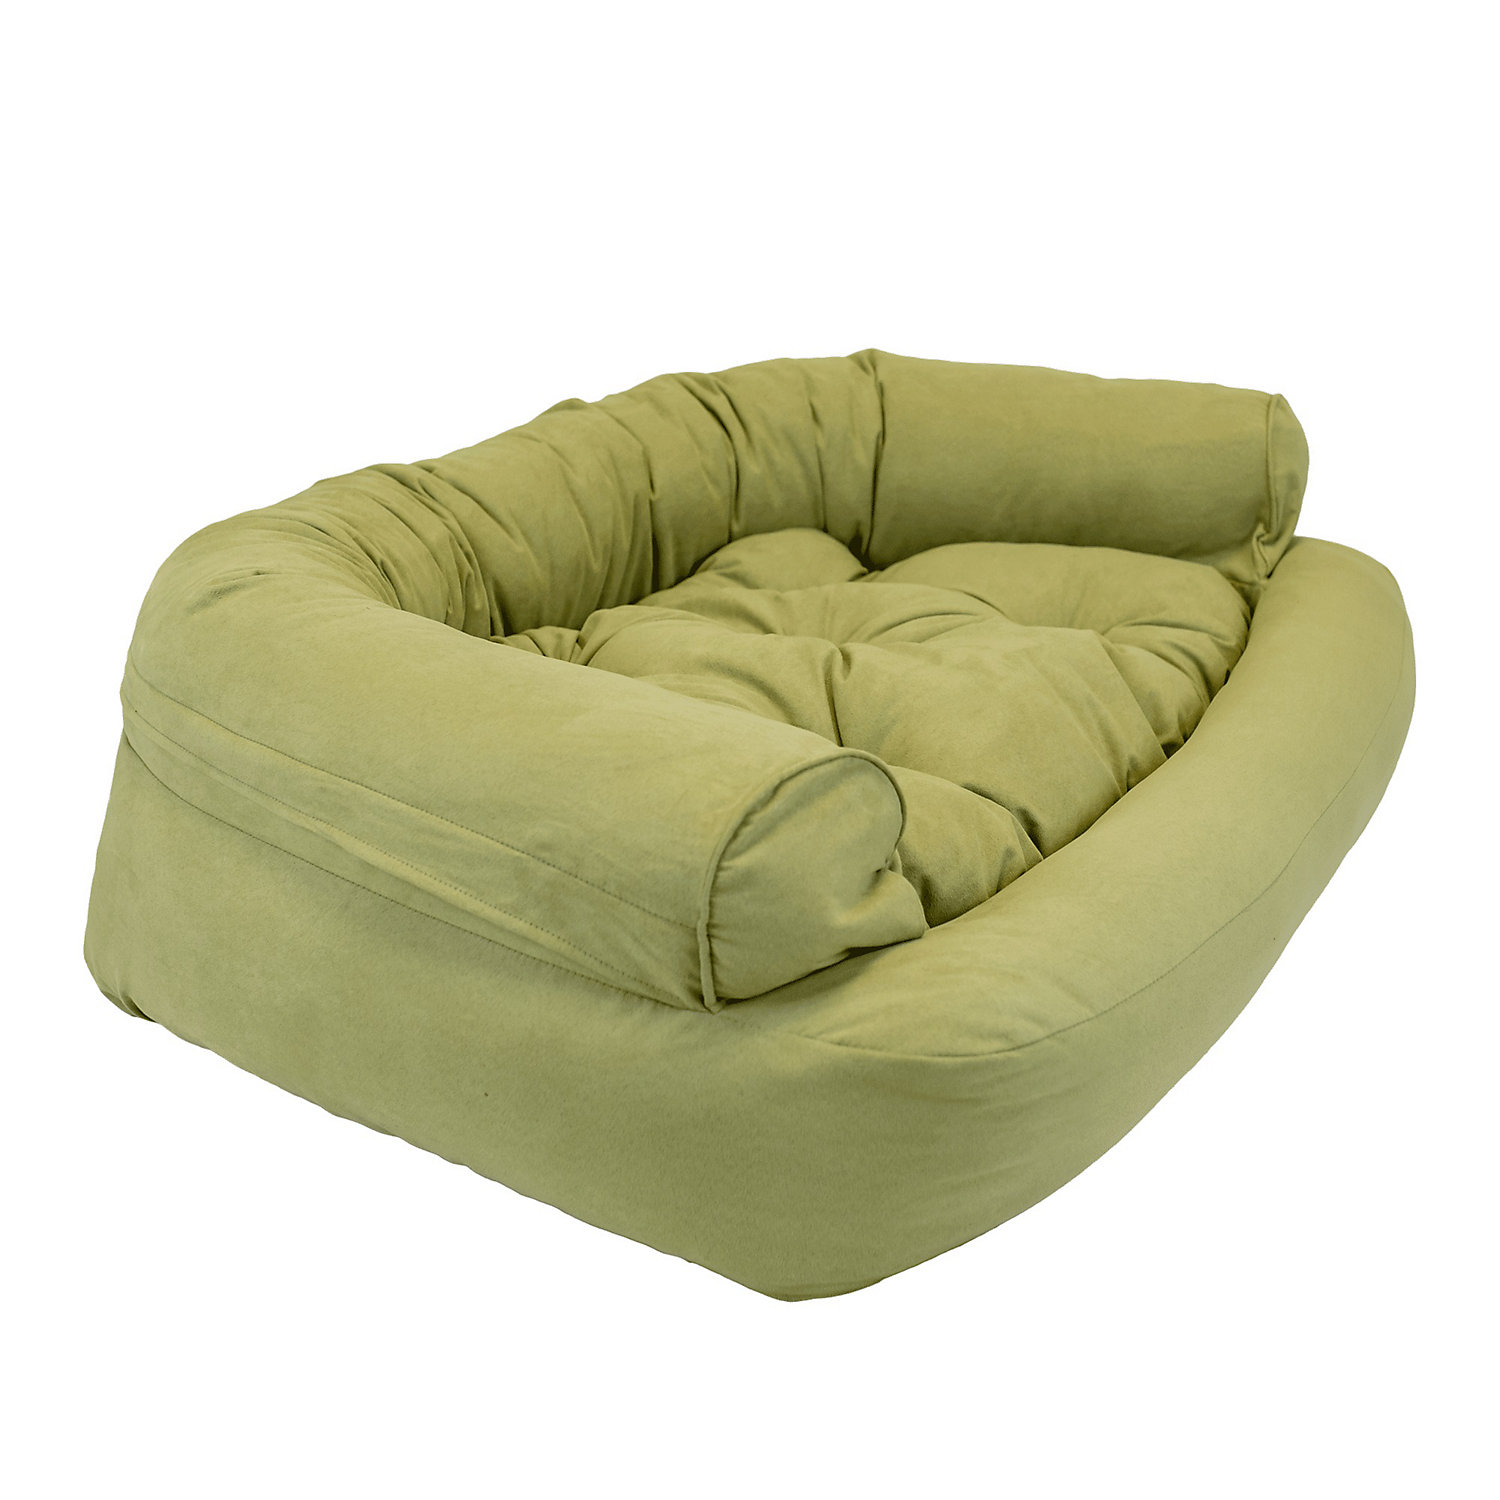 Snoozer Luxury Overstuffed Pet Sofa in Lime